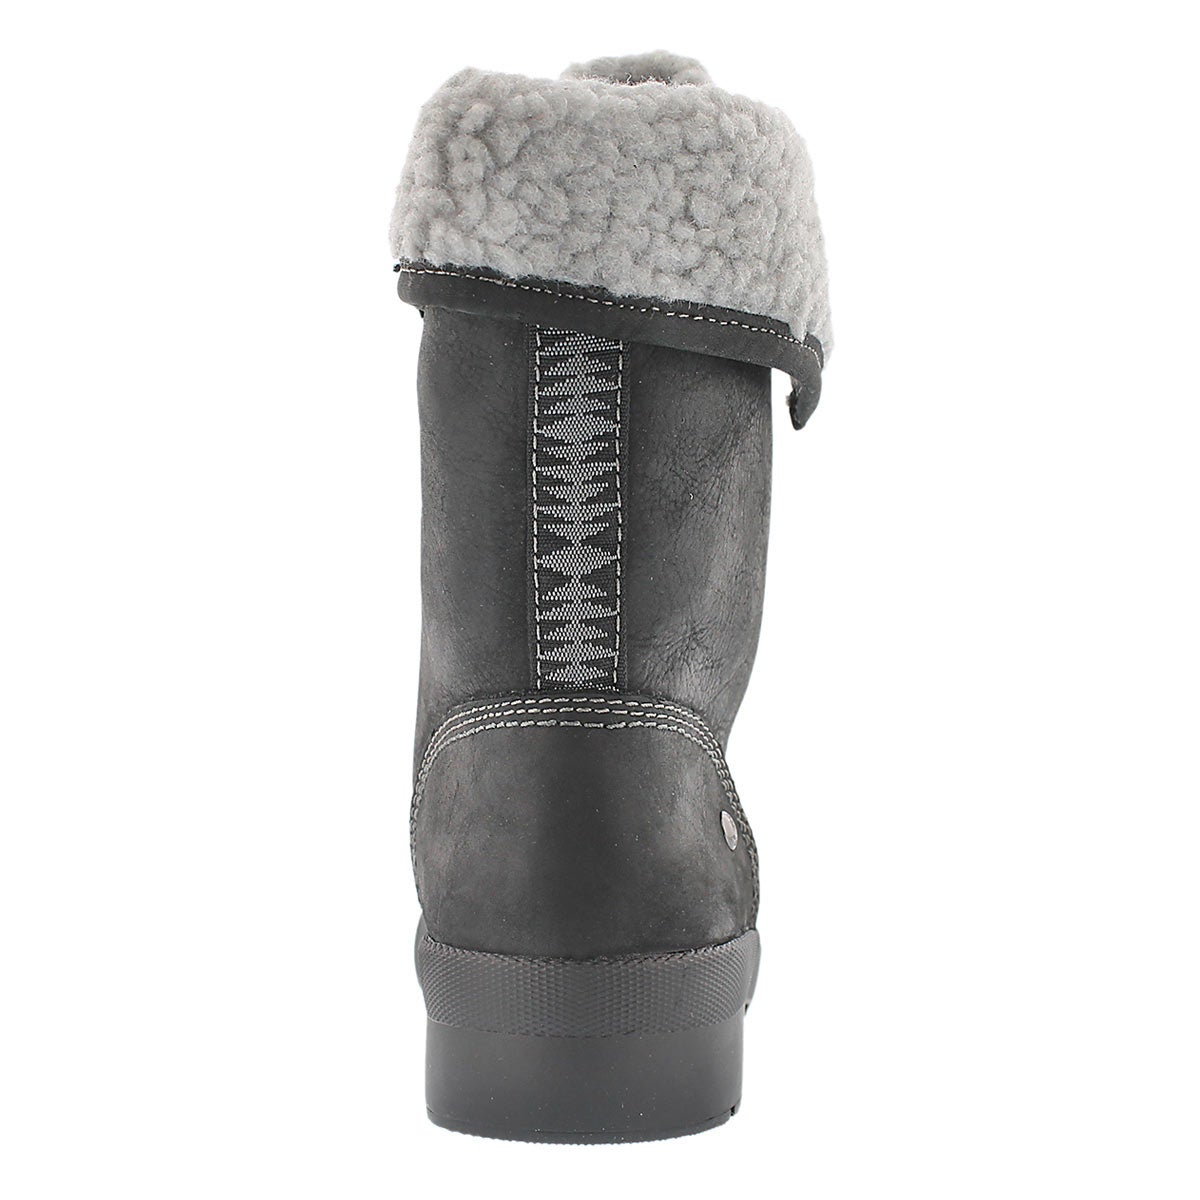 Lds Dory Fairley blk wtpf winter boot